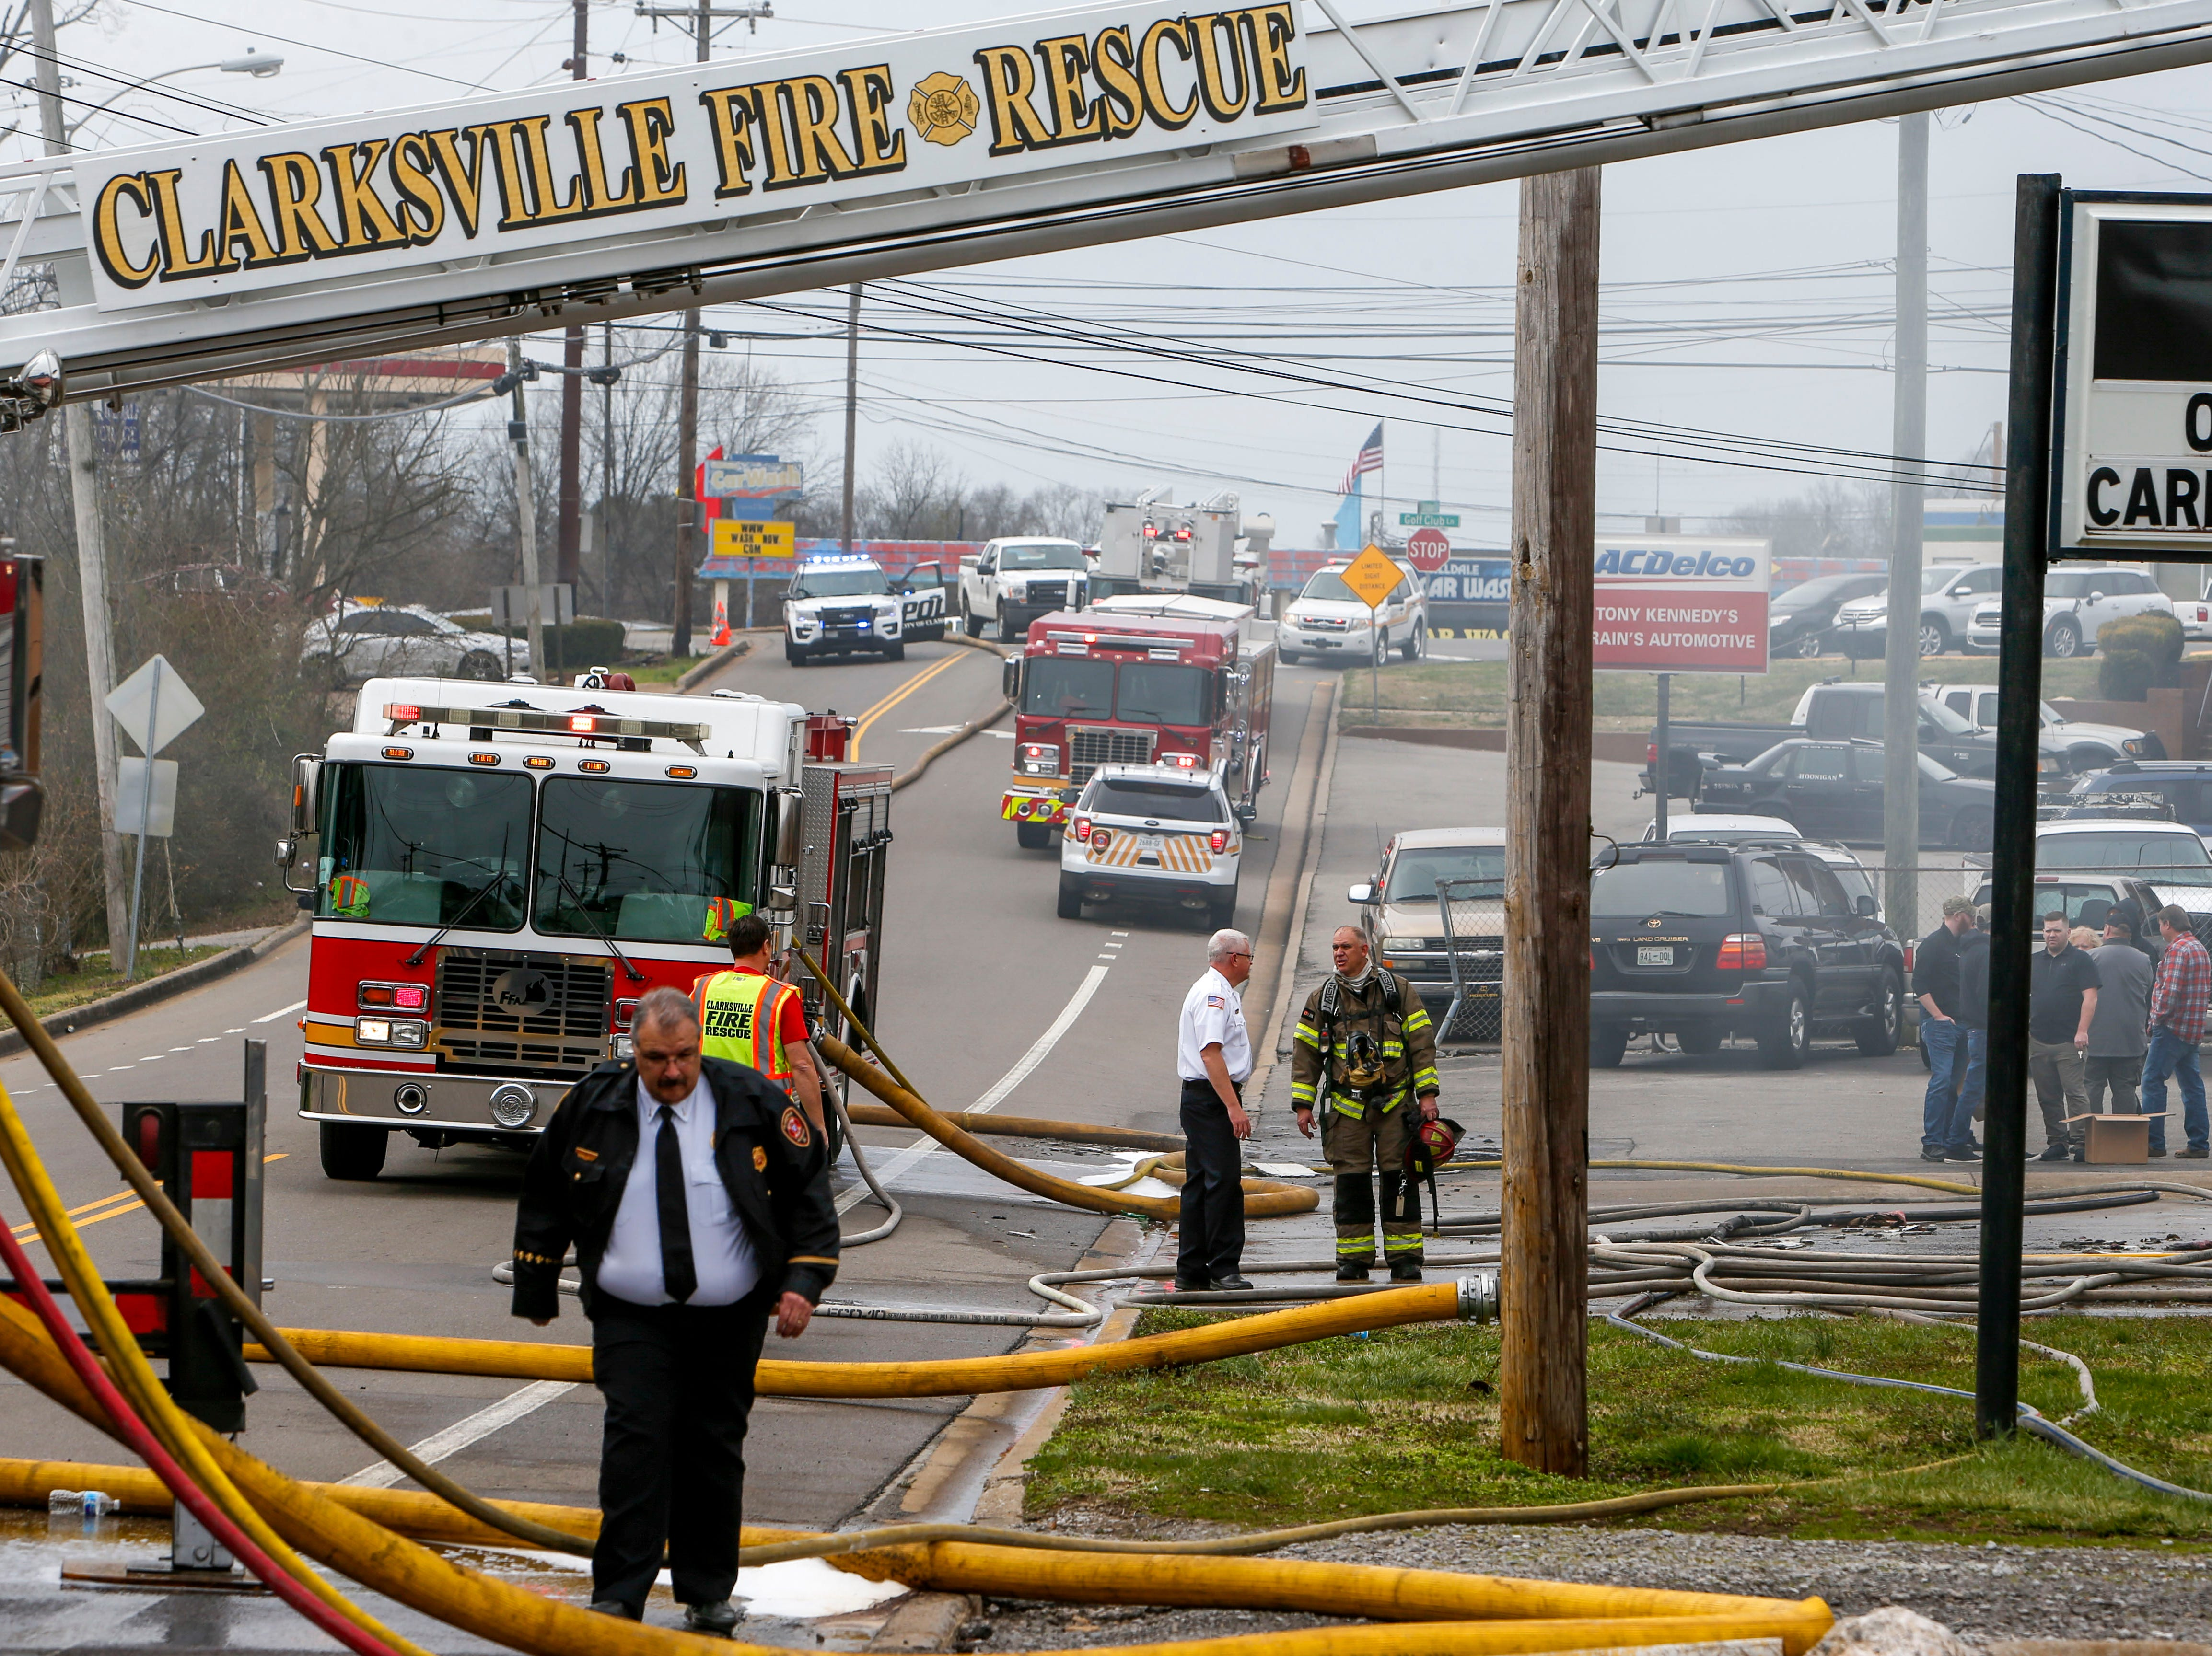 Clarksville Fire Rescue responders work to put out a fire that occurred in the shooting range at Clarksville Guns & Archery in Clarksville, Tenn., on Tuesday, March 12, 2019.